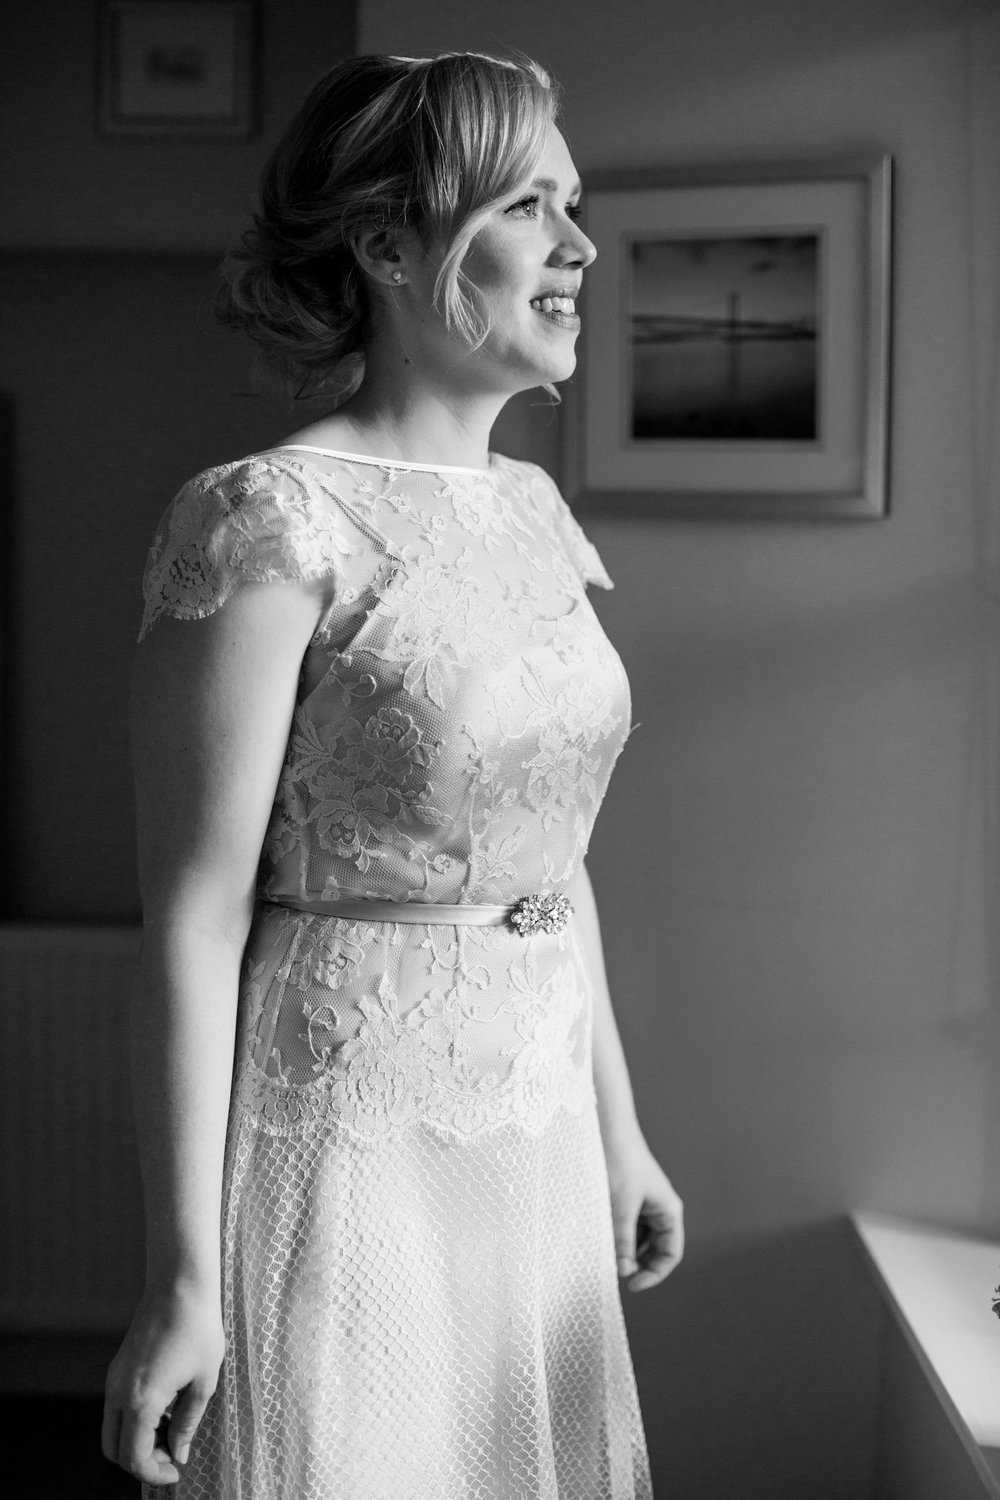 Gorgeous bride Terese wears a wedding dress by Halfpenny London